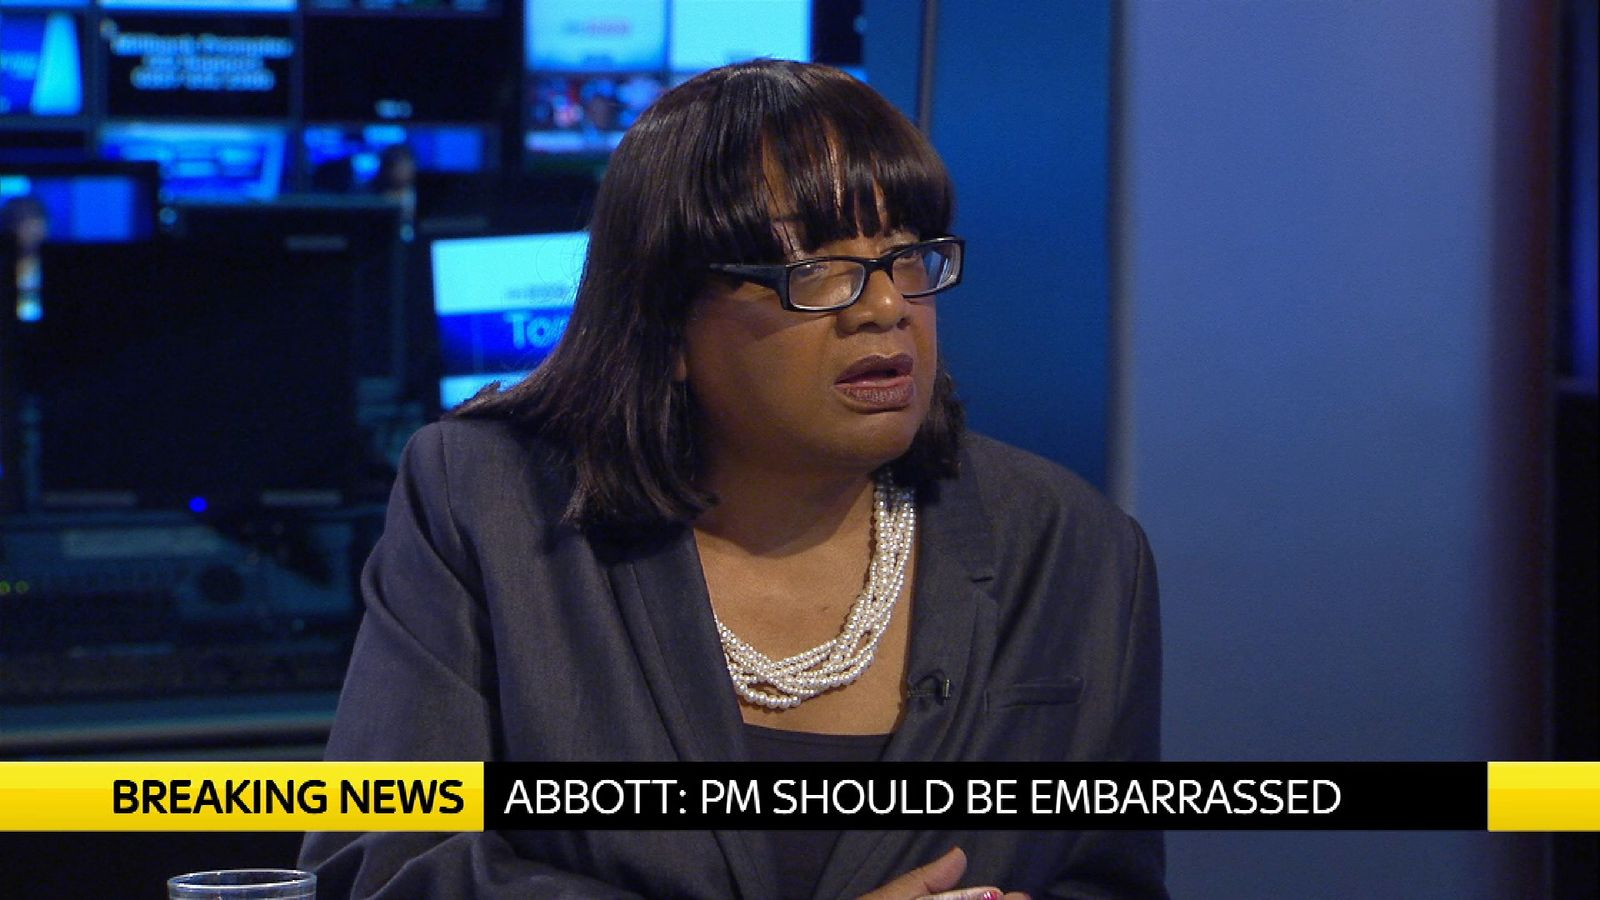 Diane Abbott, Labour's shadow home secretary